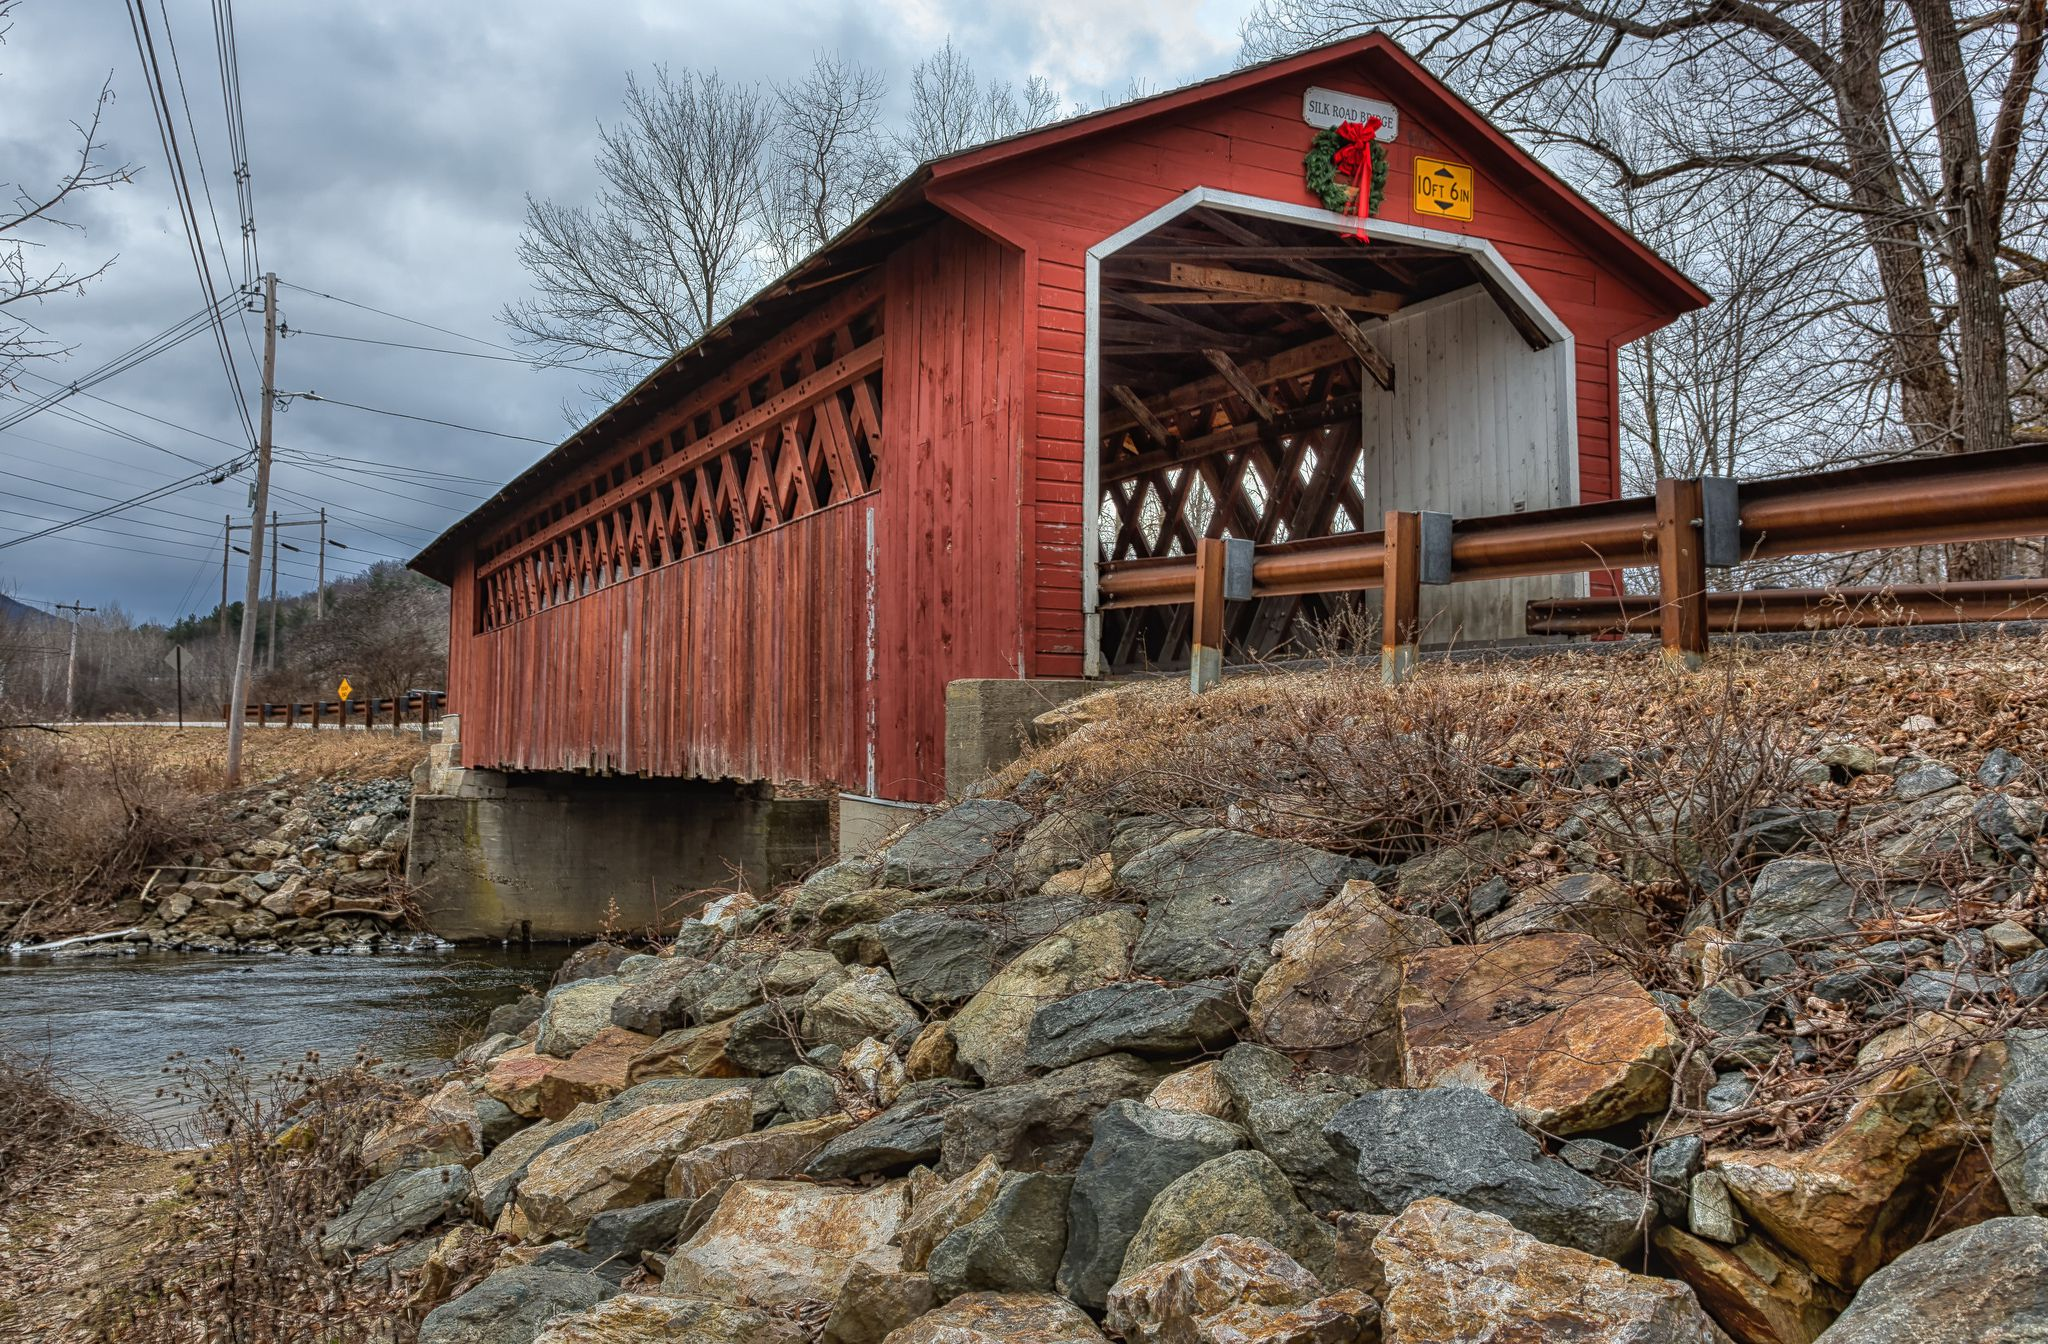 Visit 5 Vermont Covered Bridges On This Driving Tour